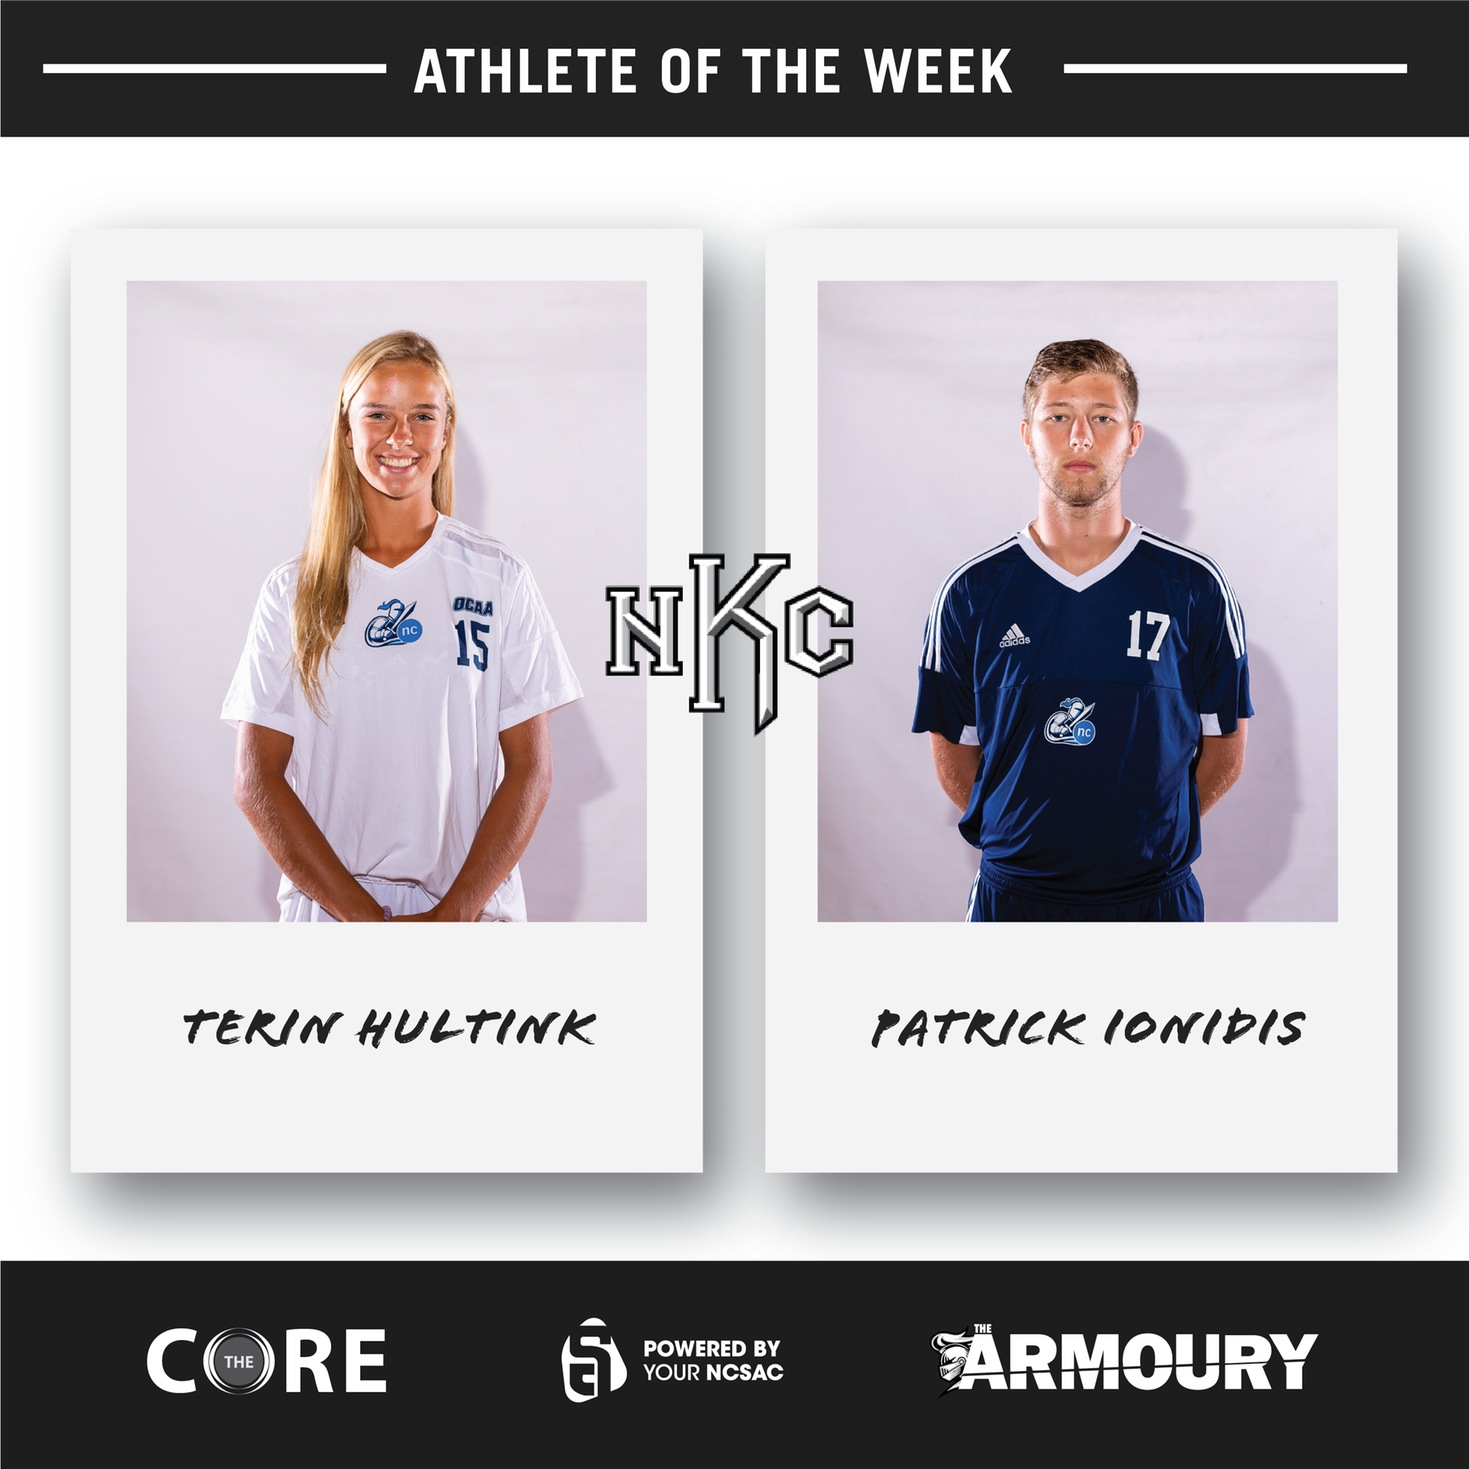 Hultink and Ionidis Earn Athlete of the Week Honours for September 23-27